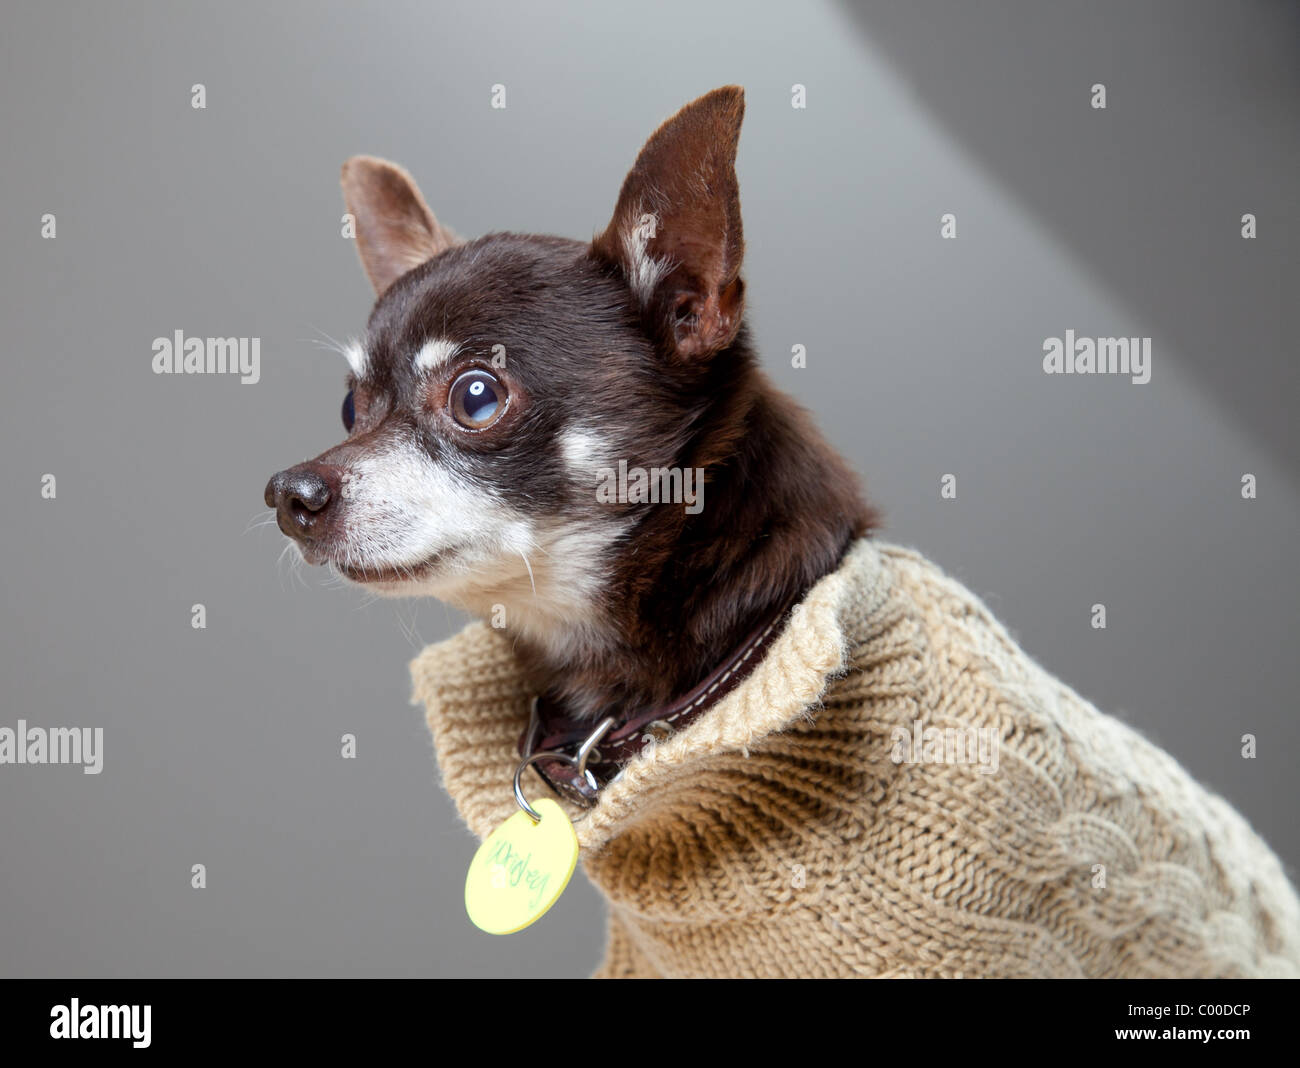 Studio photos of a dark brown Chihuahua dog in a light brown sweater - Stock Image